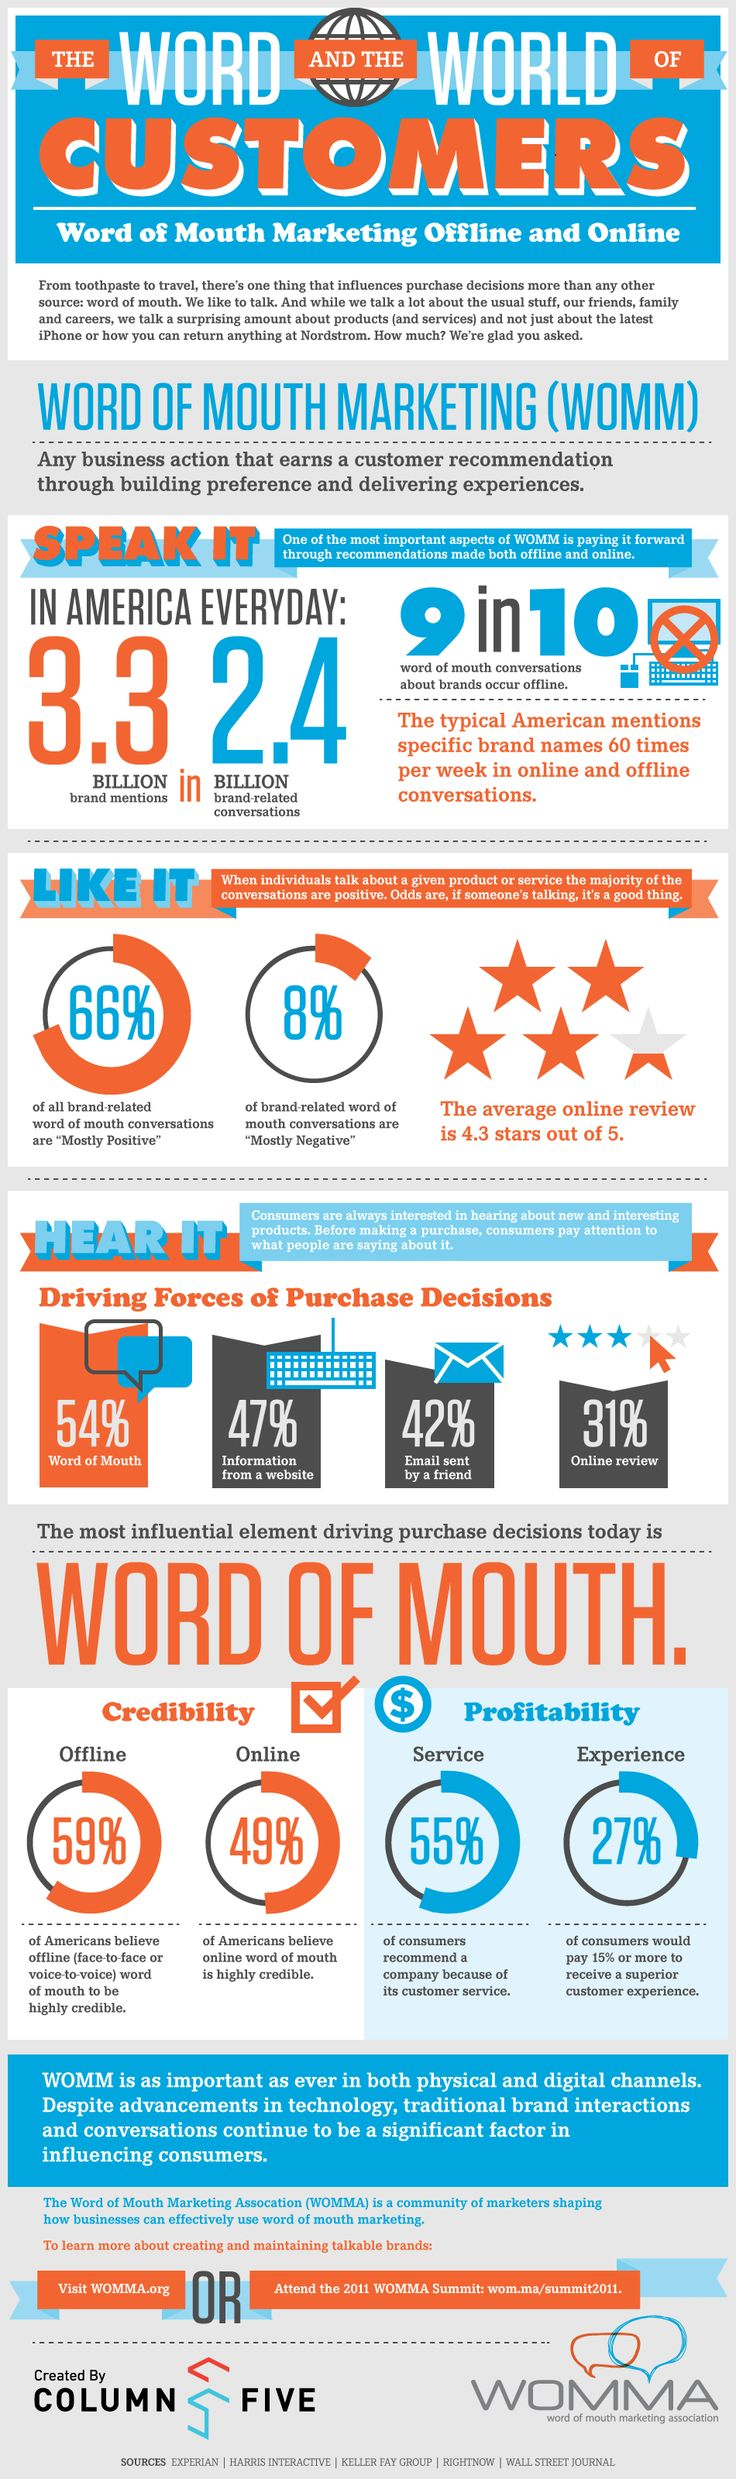 Infographic on WOM stats